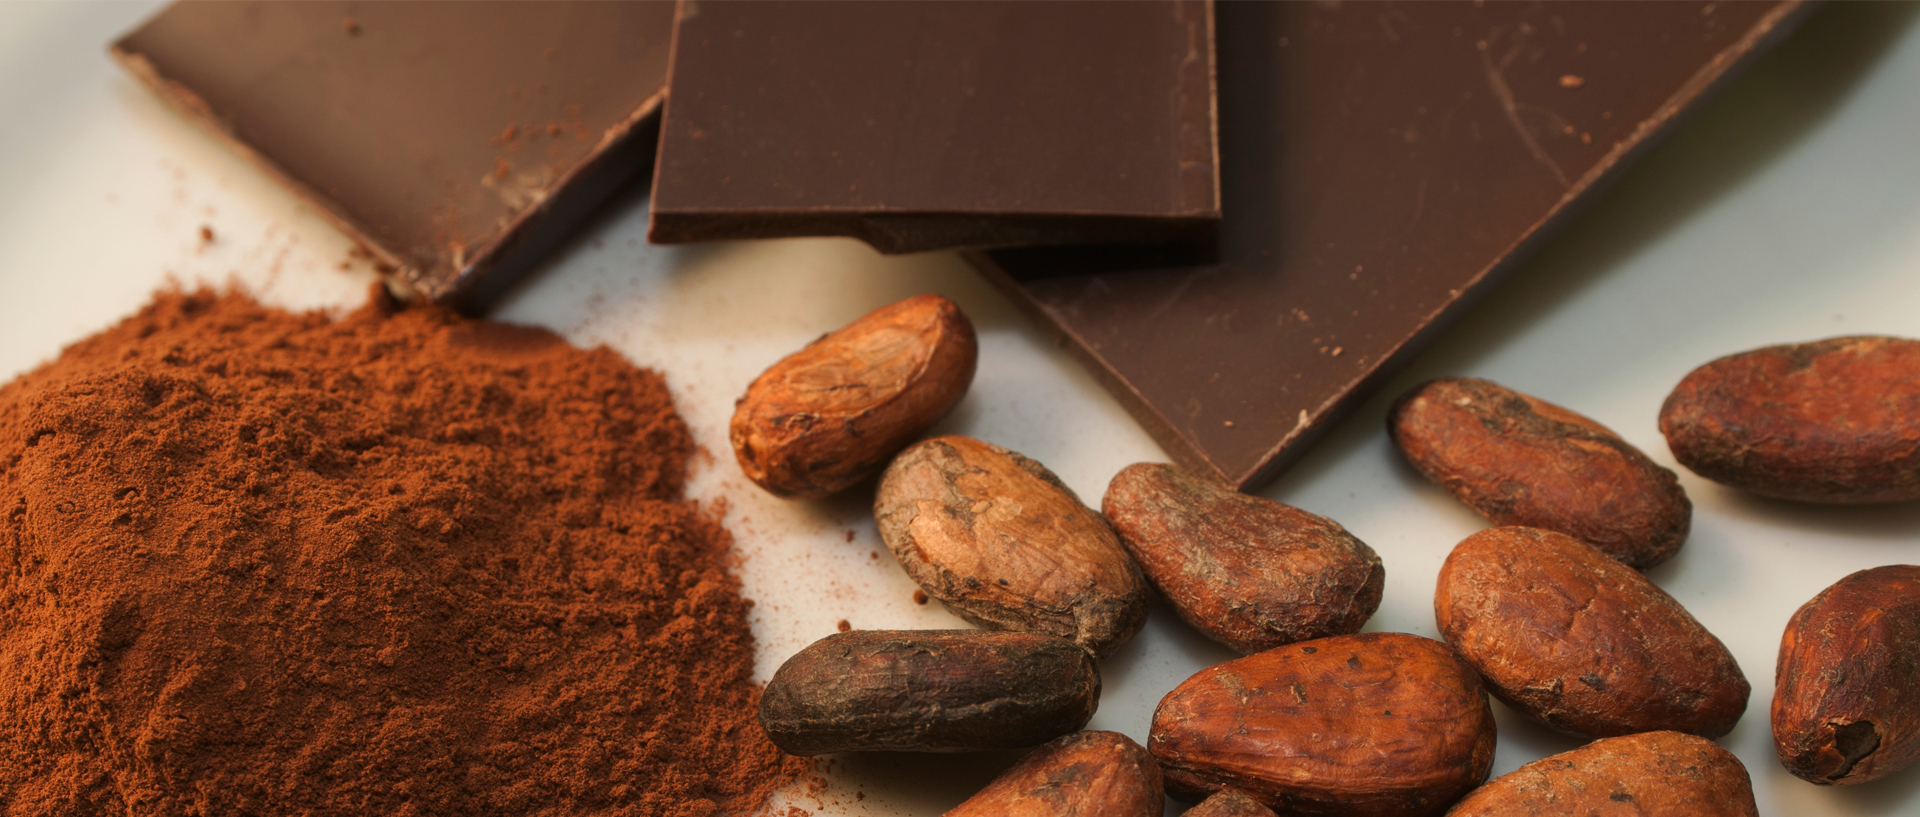 Valentine's Day ETFs Aren't so Sweet, Chocolate bars, cocoa powder, and cocoa beans. Cocoa ETFs are expensive